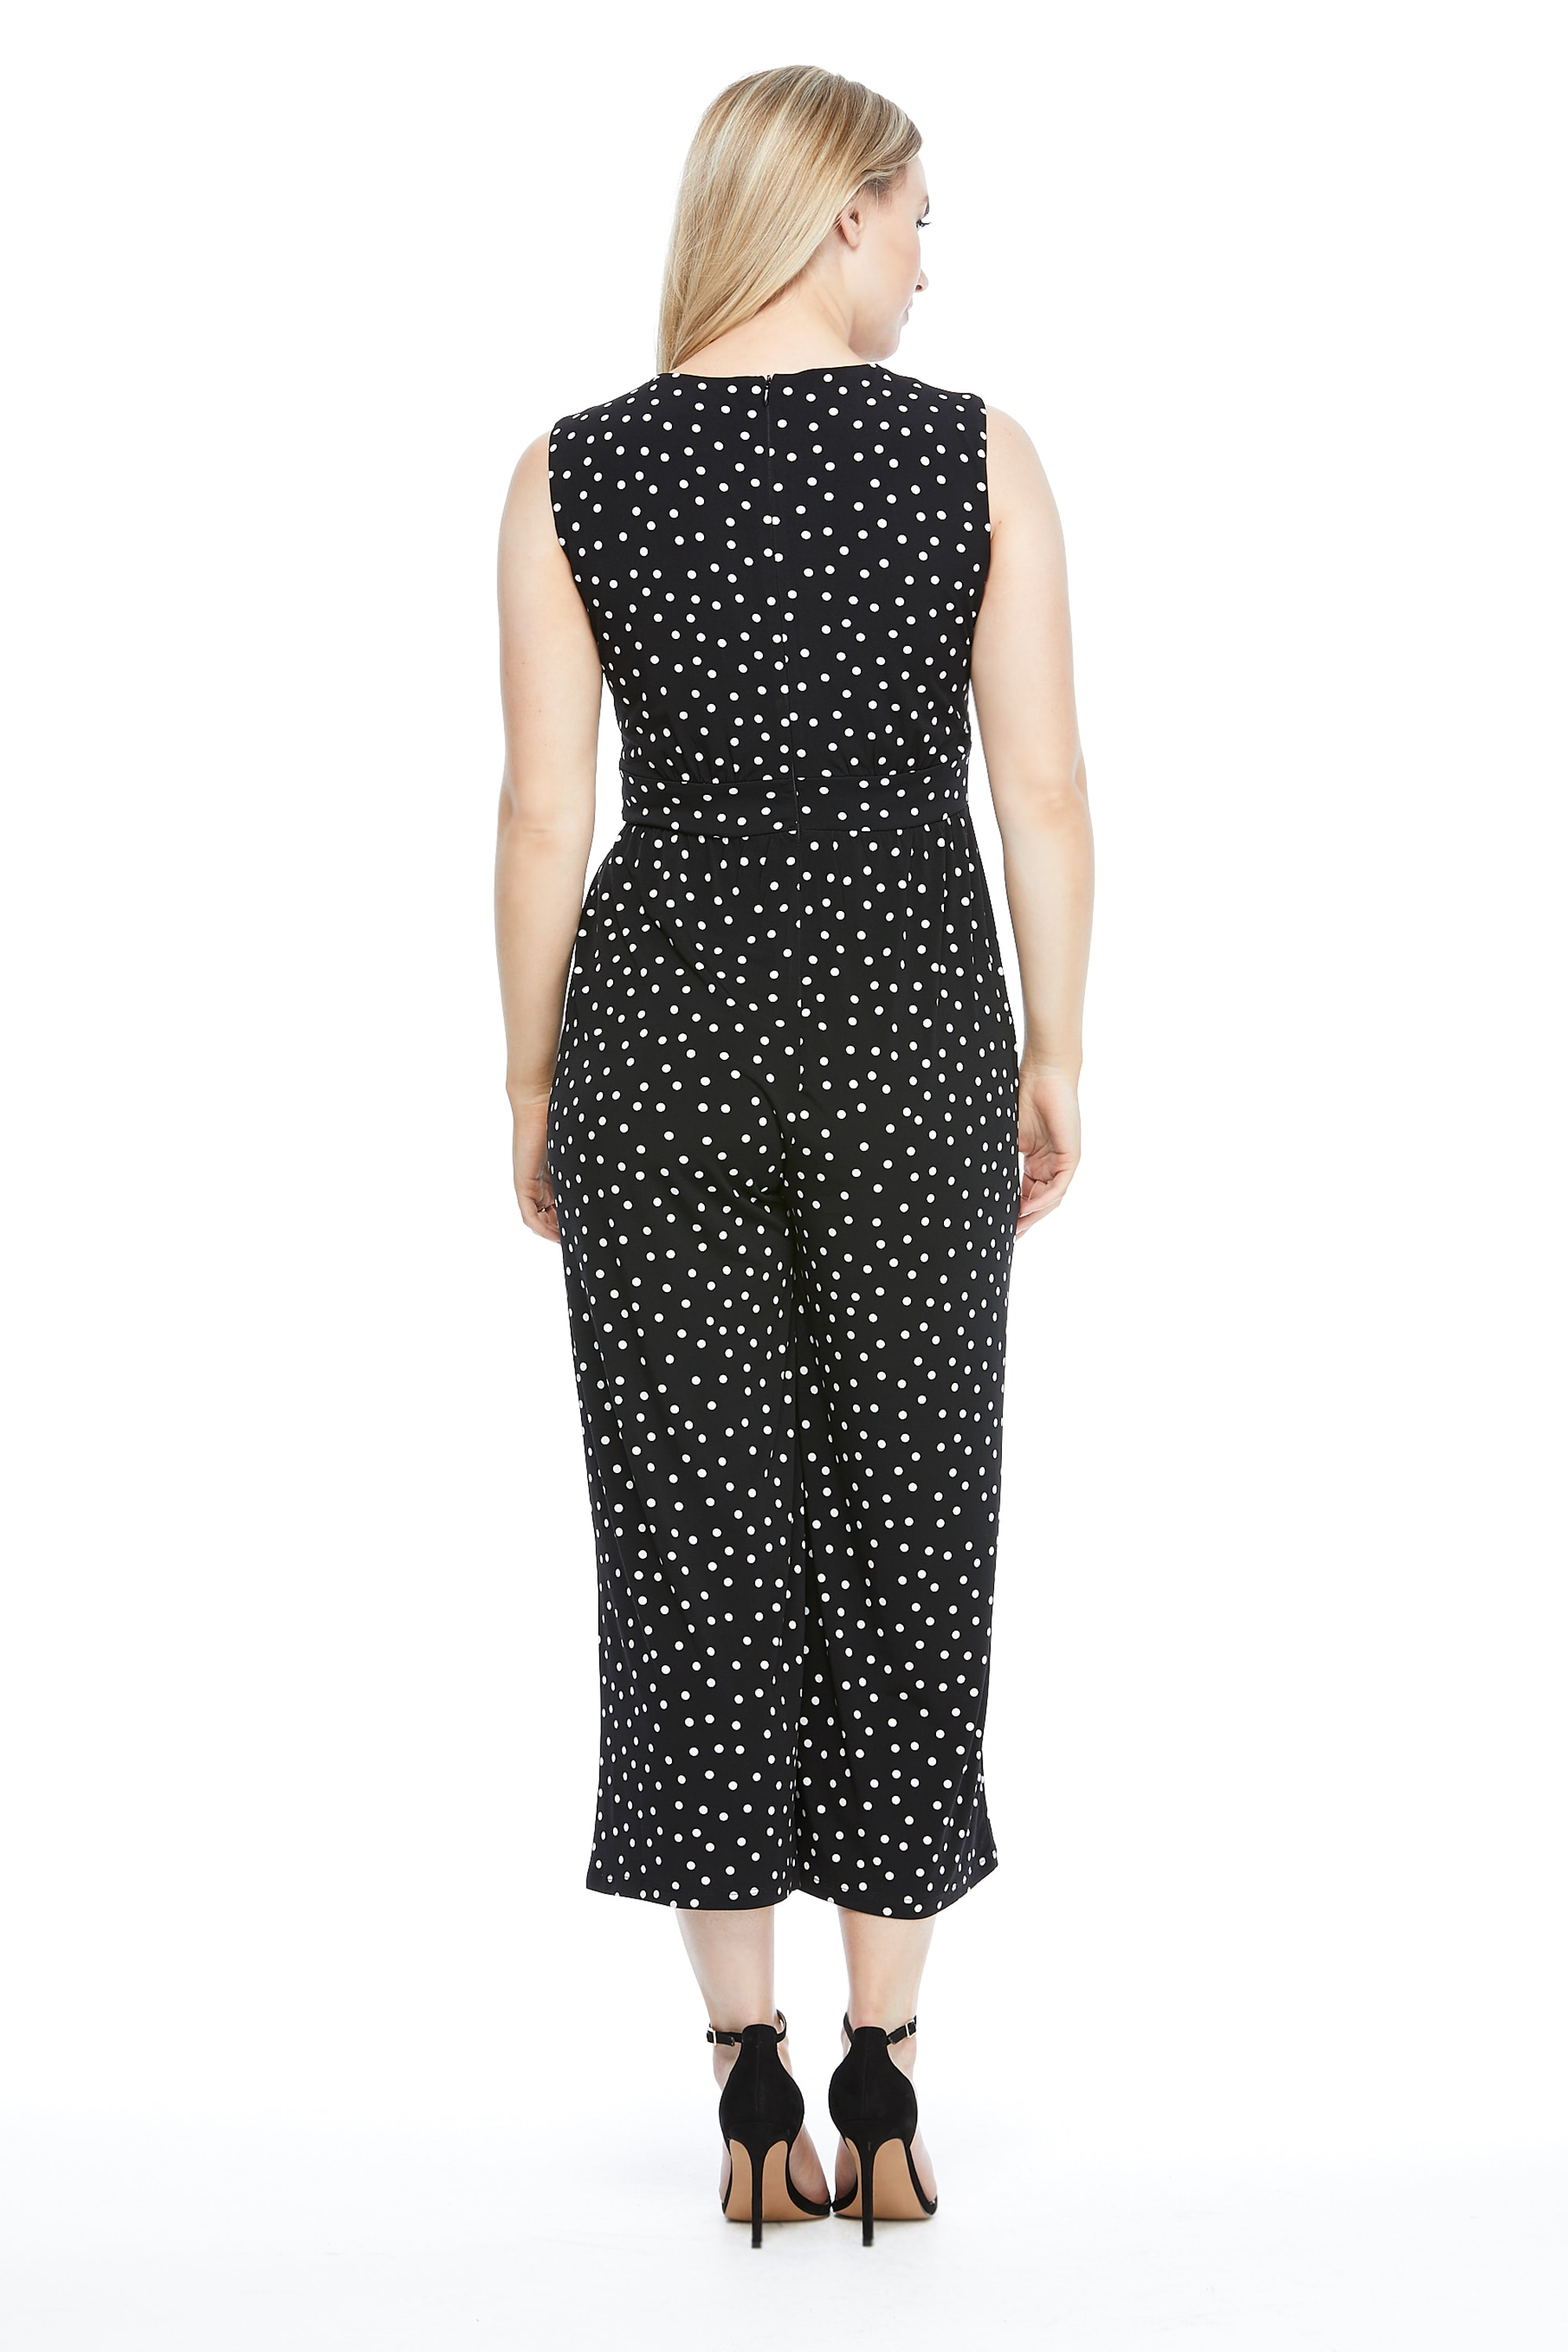 Annabelle Polka Dot Jumpsuit - Black/White - Back